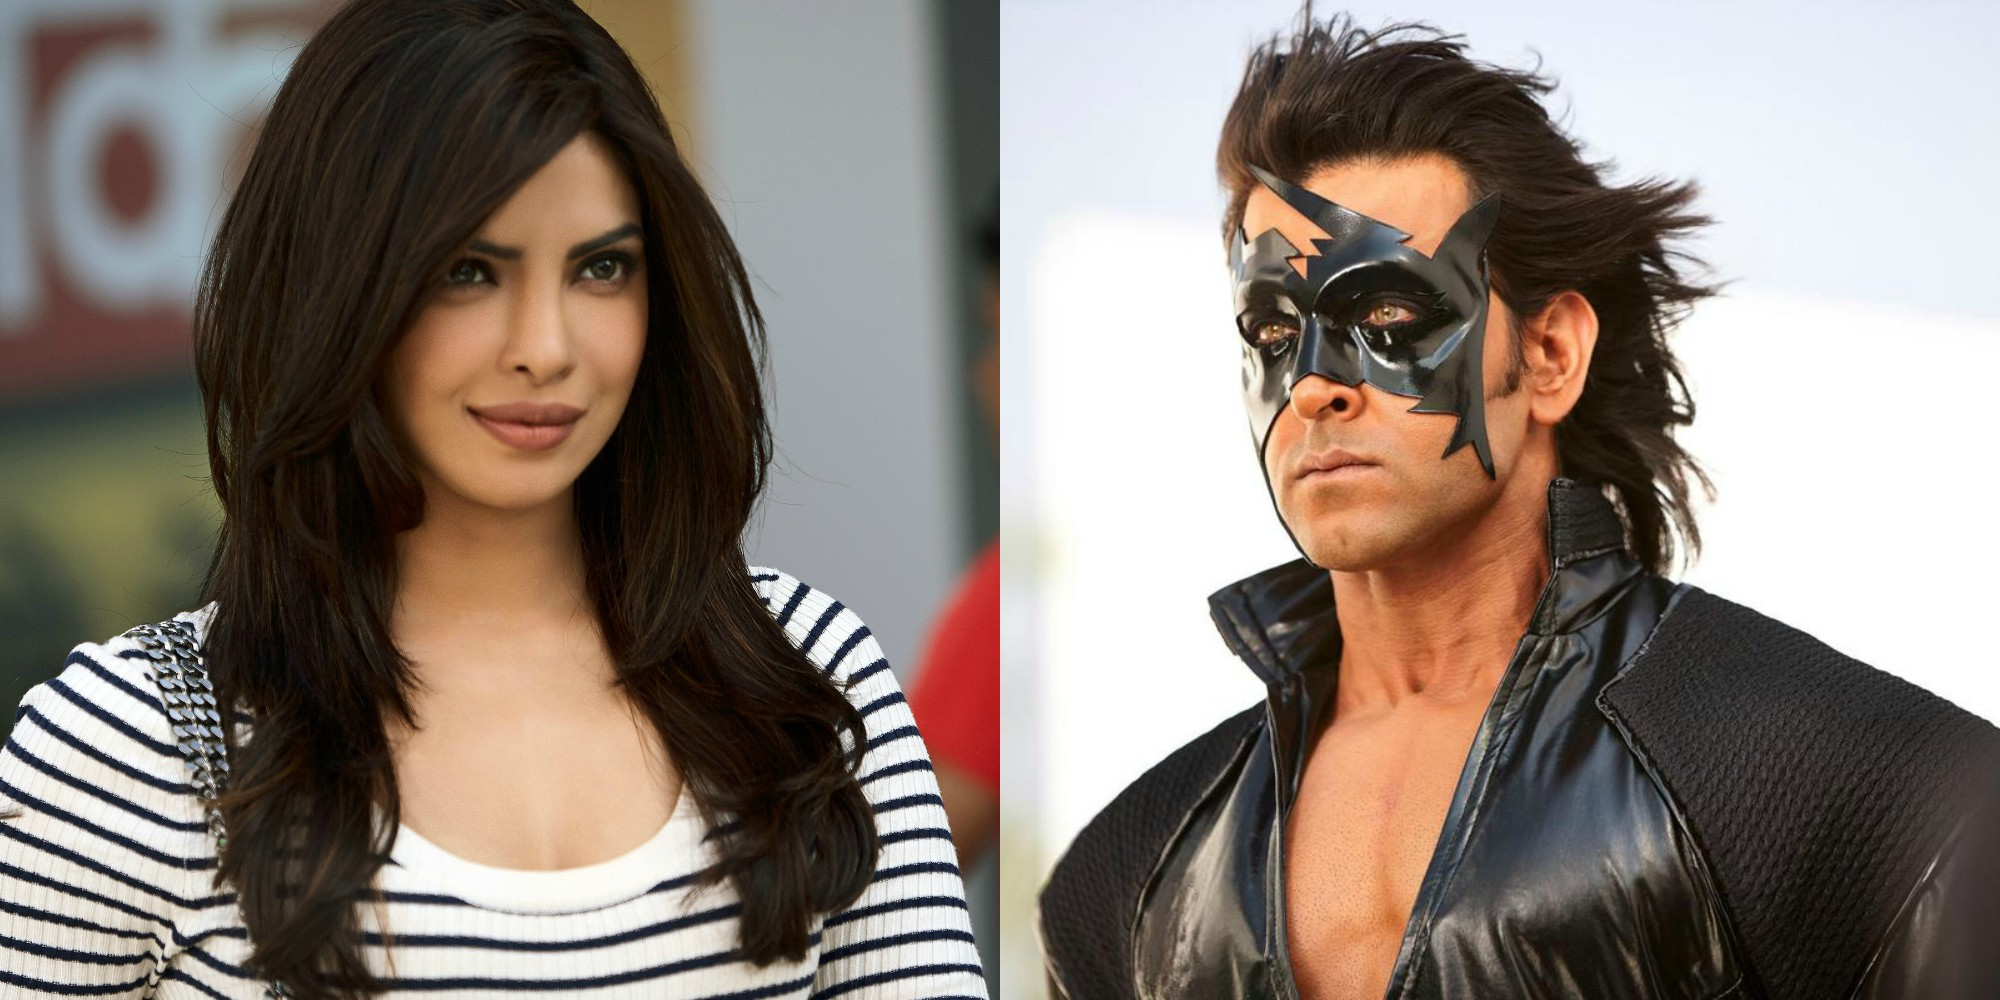 priyanka chopra will reunite with india's first superhero in krrish